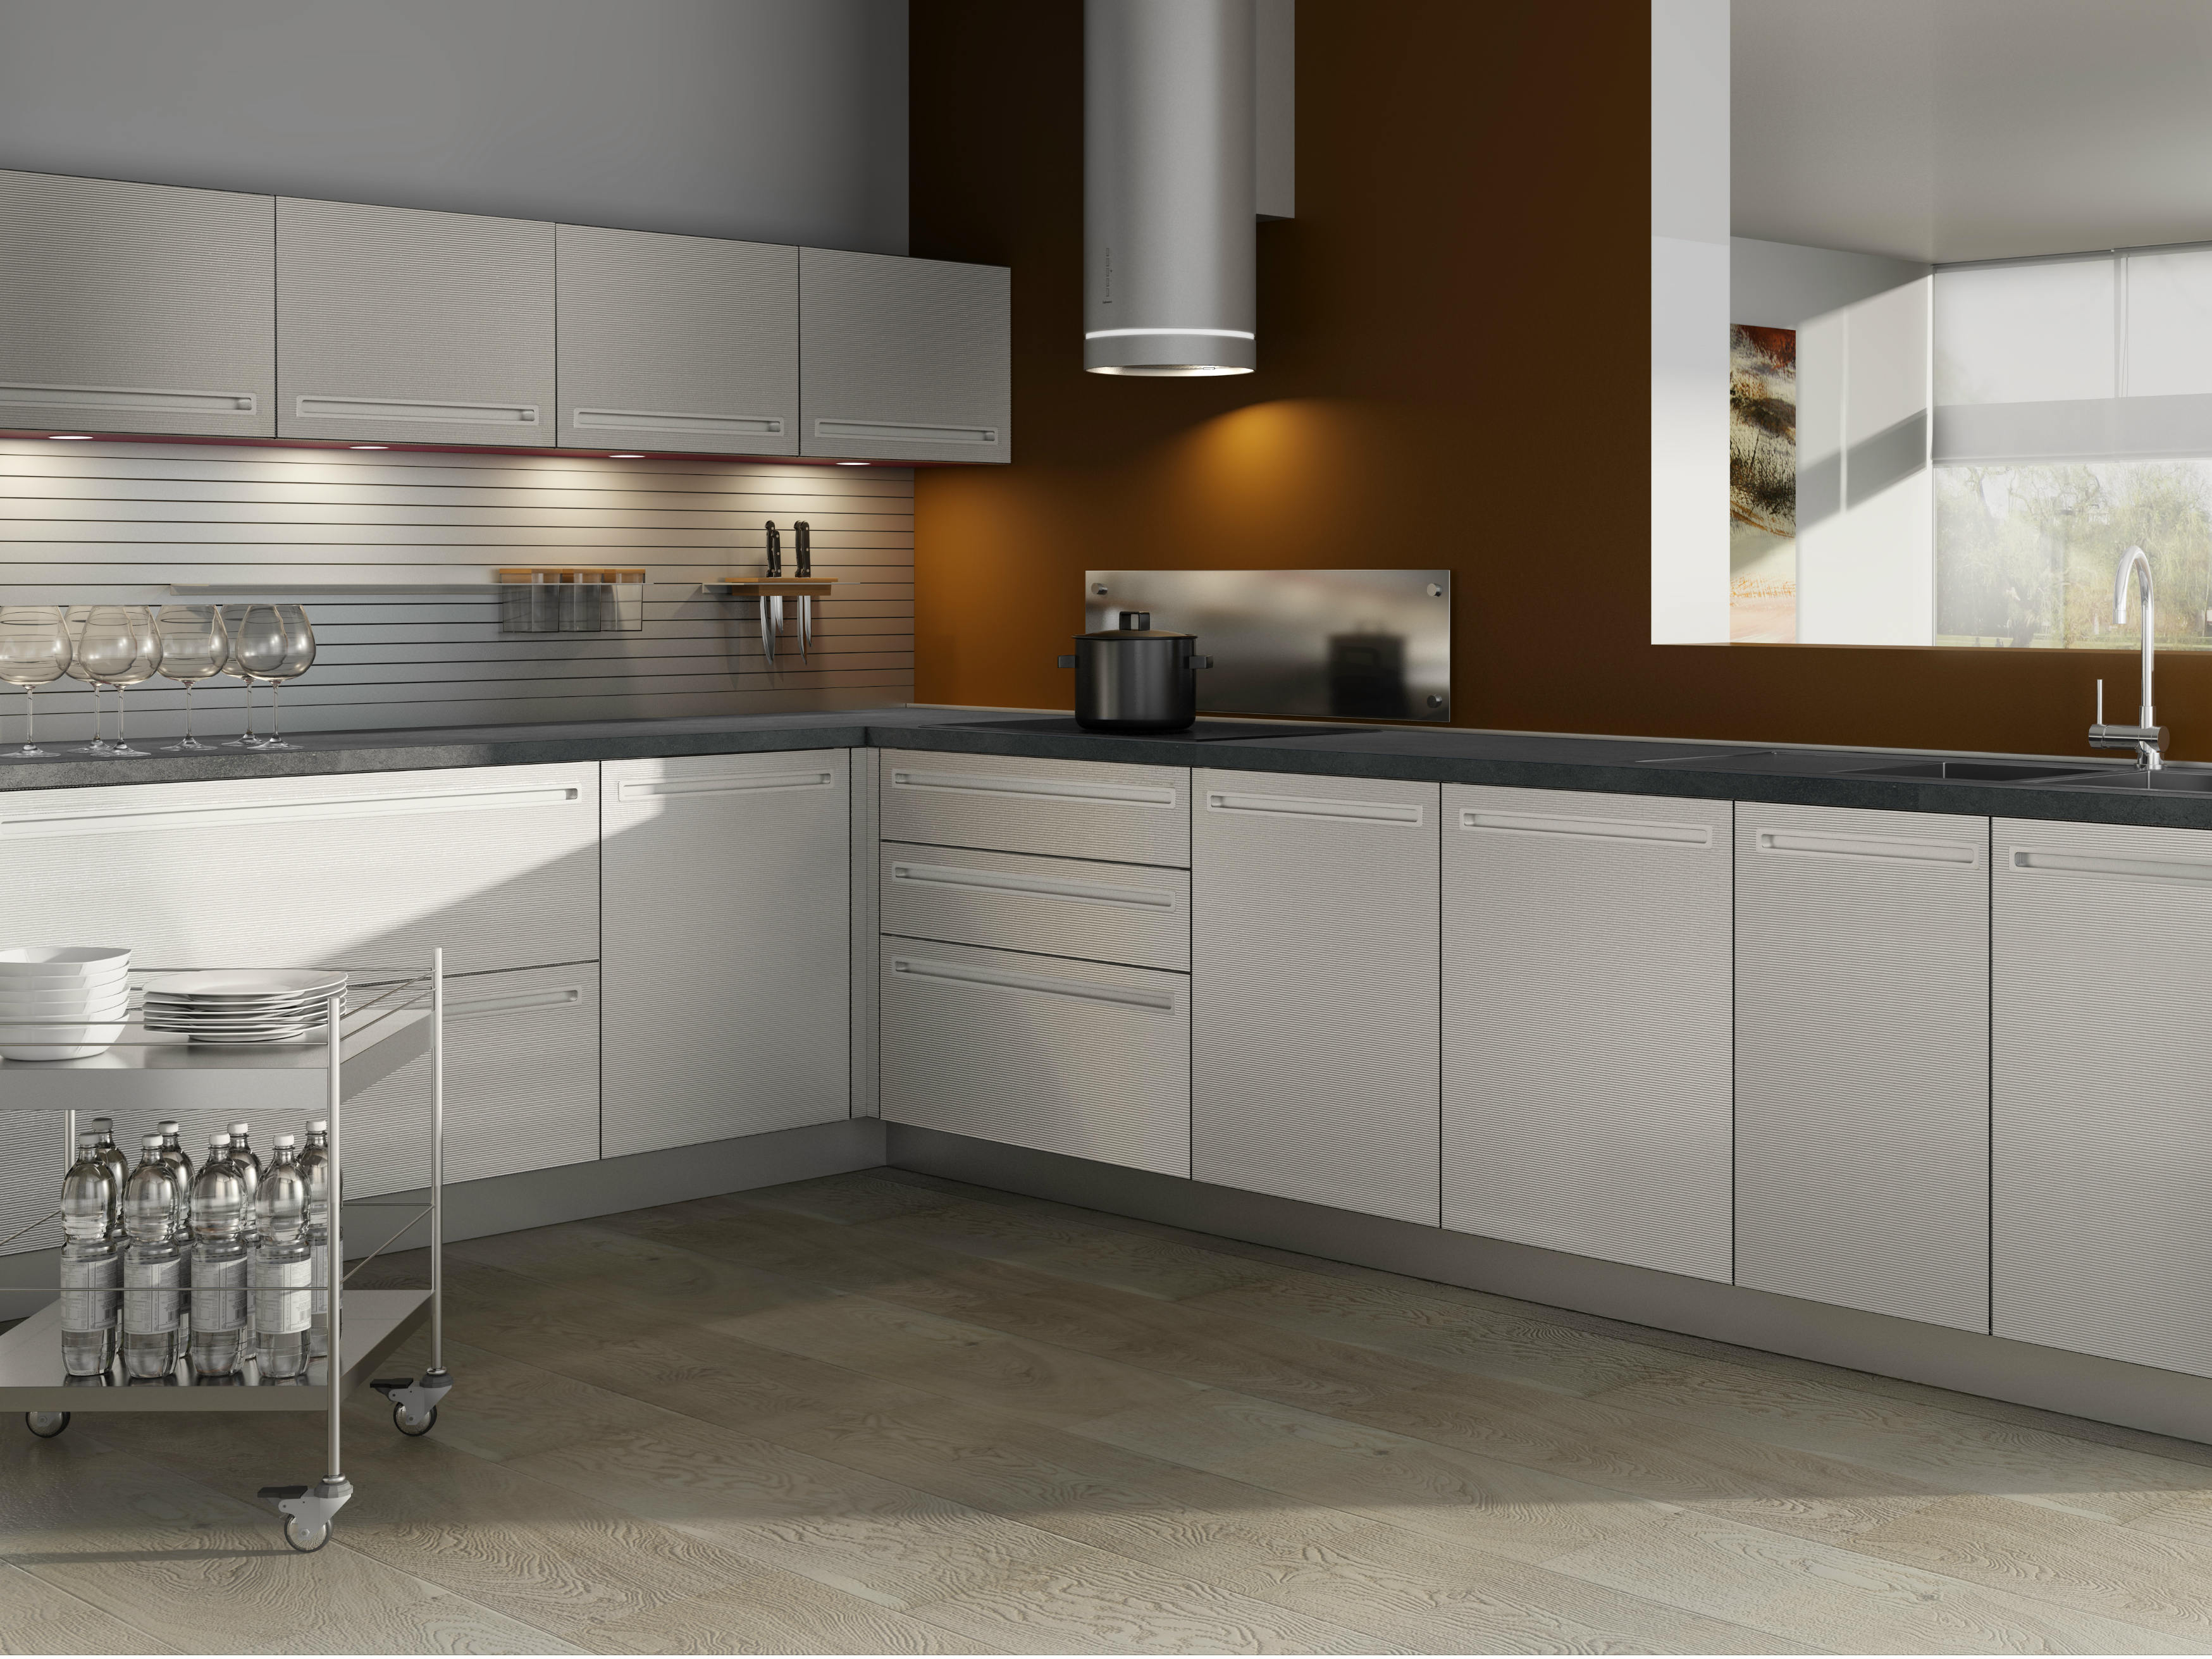 Linear HPL Kitchen Without Handles VELVE | Kitchen Without Handles Velve  Collection By De Rosso